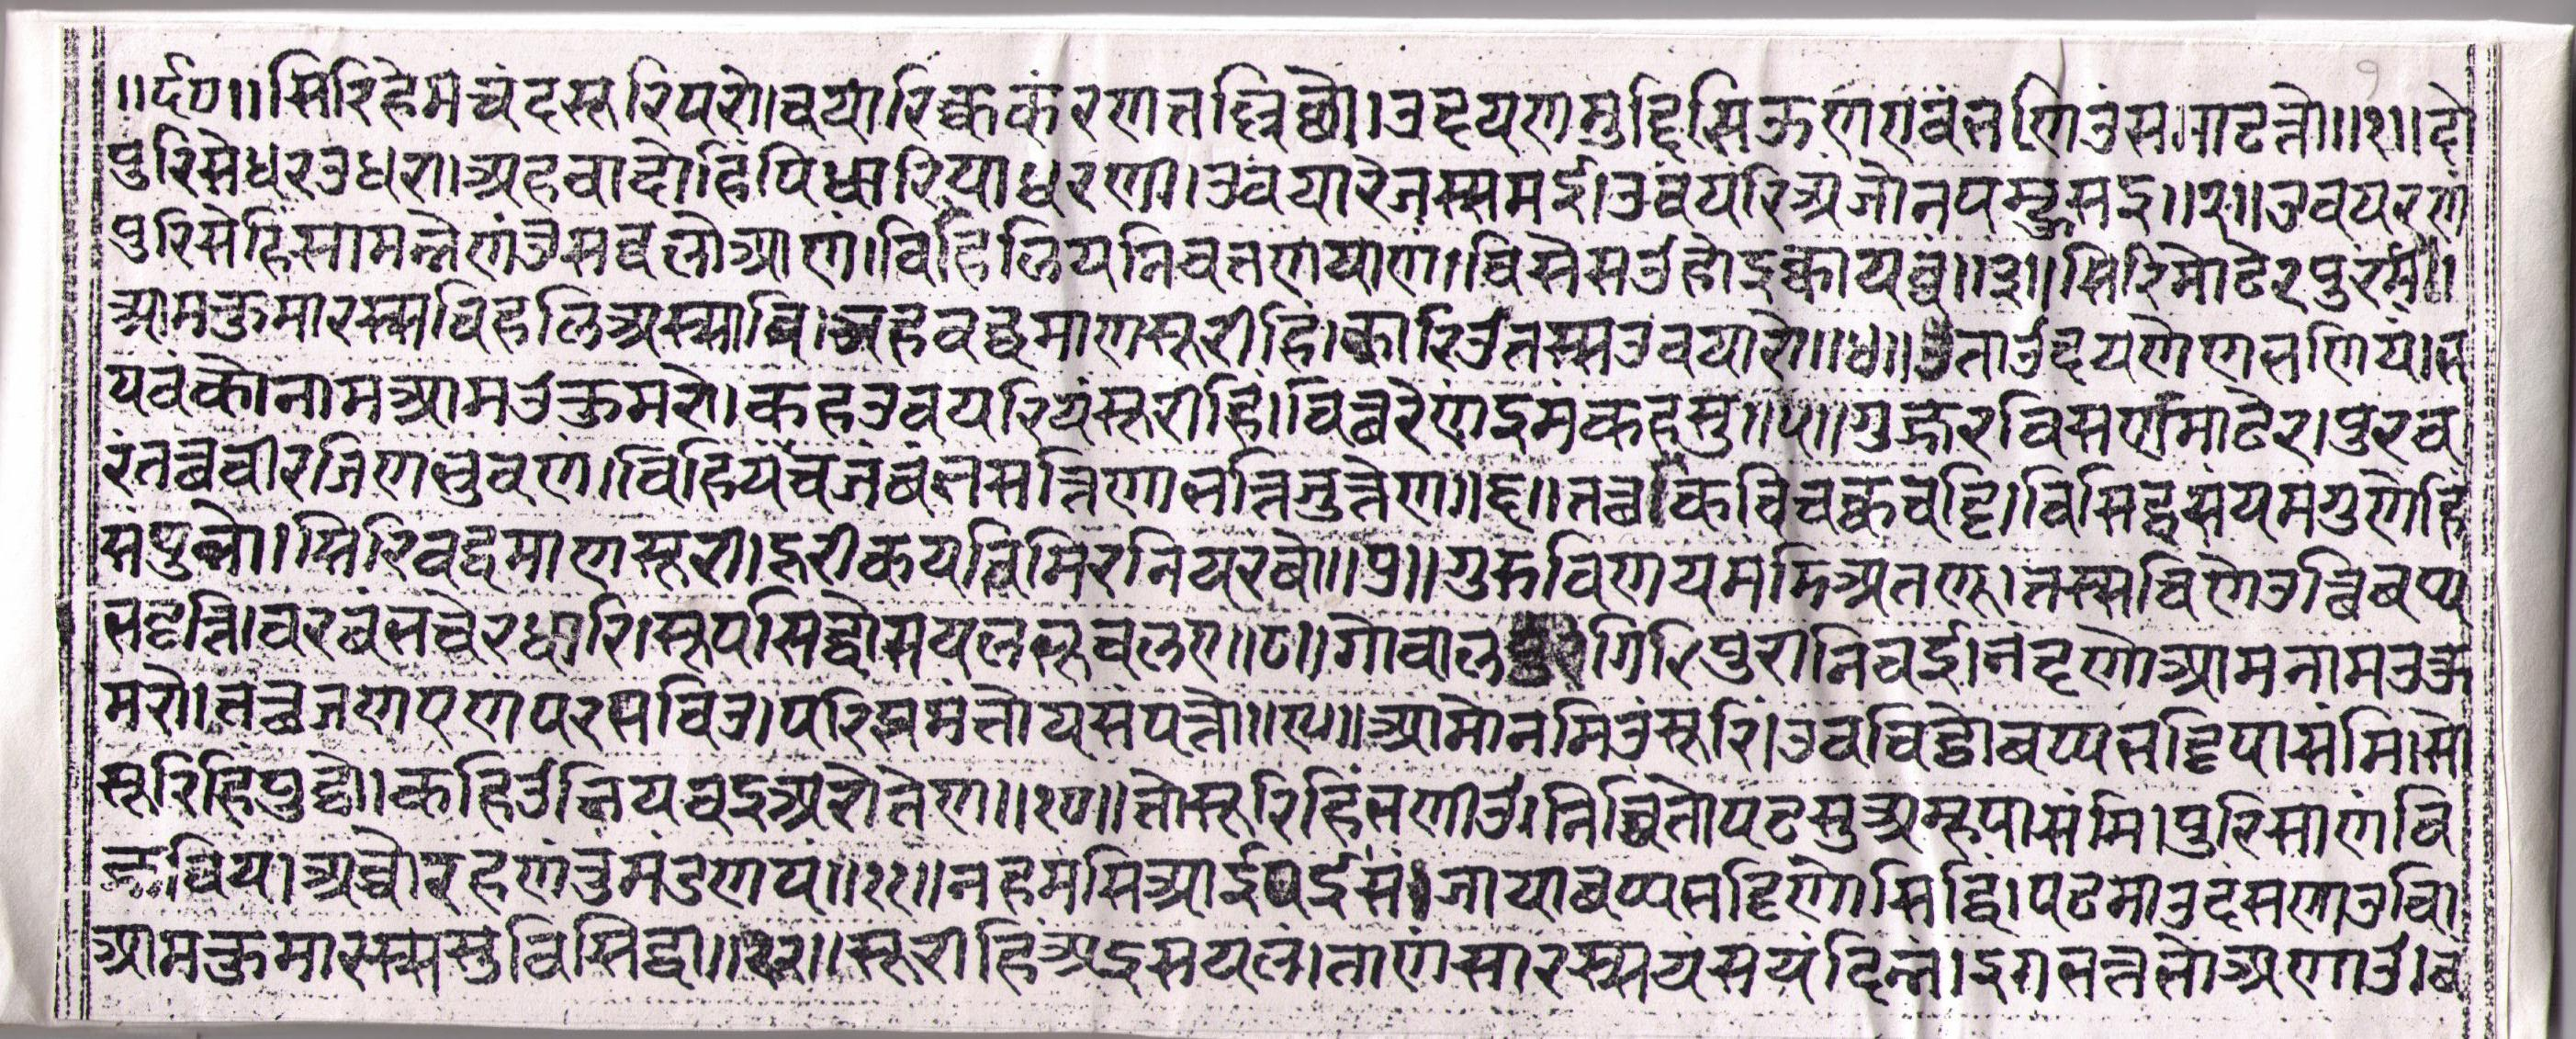 essays in sanskrit language o library Dclanguageiso: english dcpublisher scanner internet archive python library 120dev4 works essays on sanskrit literature vol iii  jan 17, 2017 01.